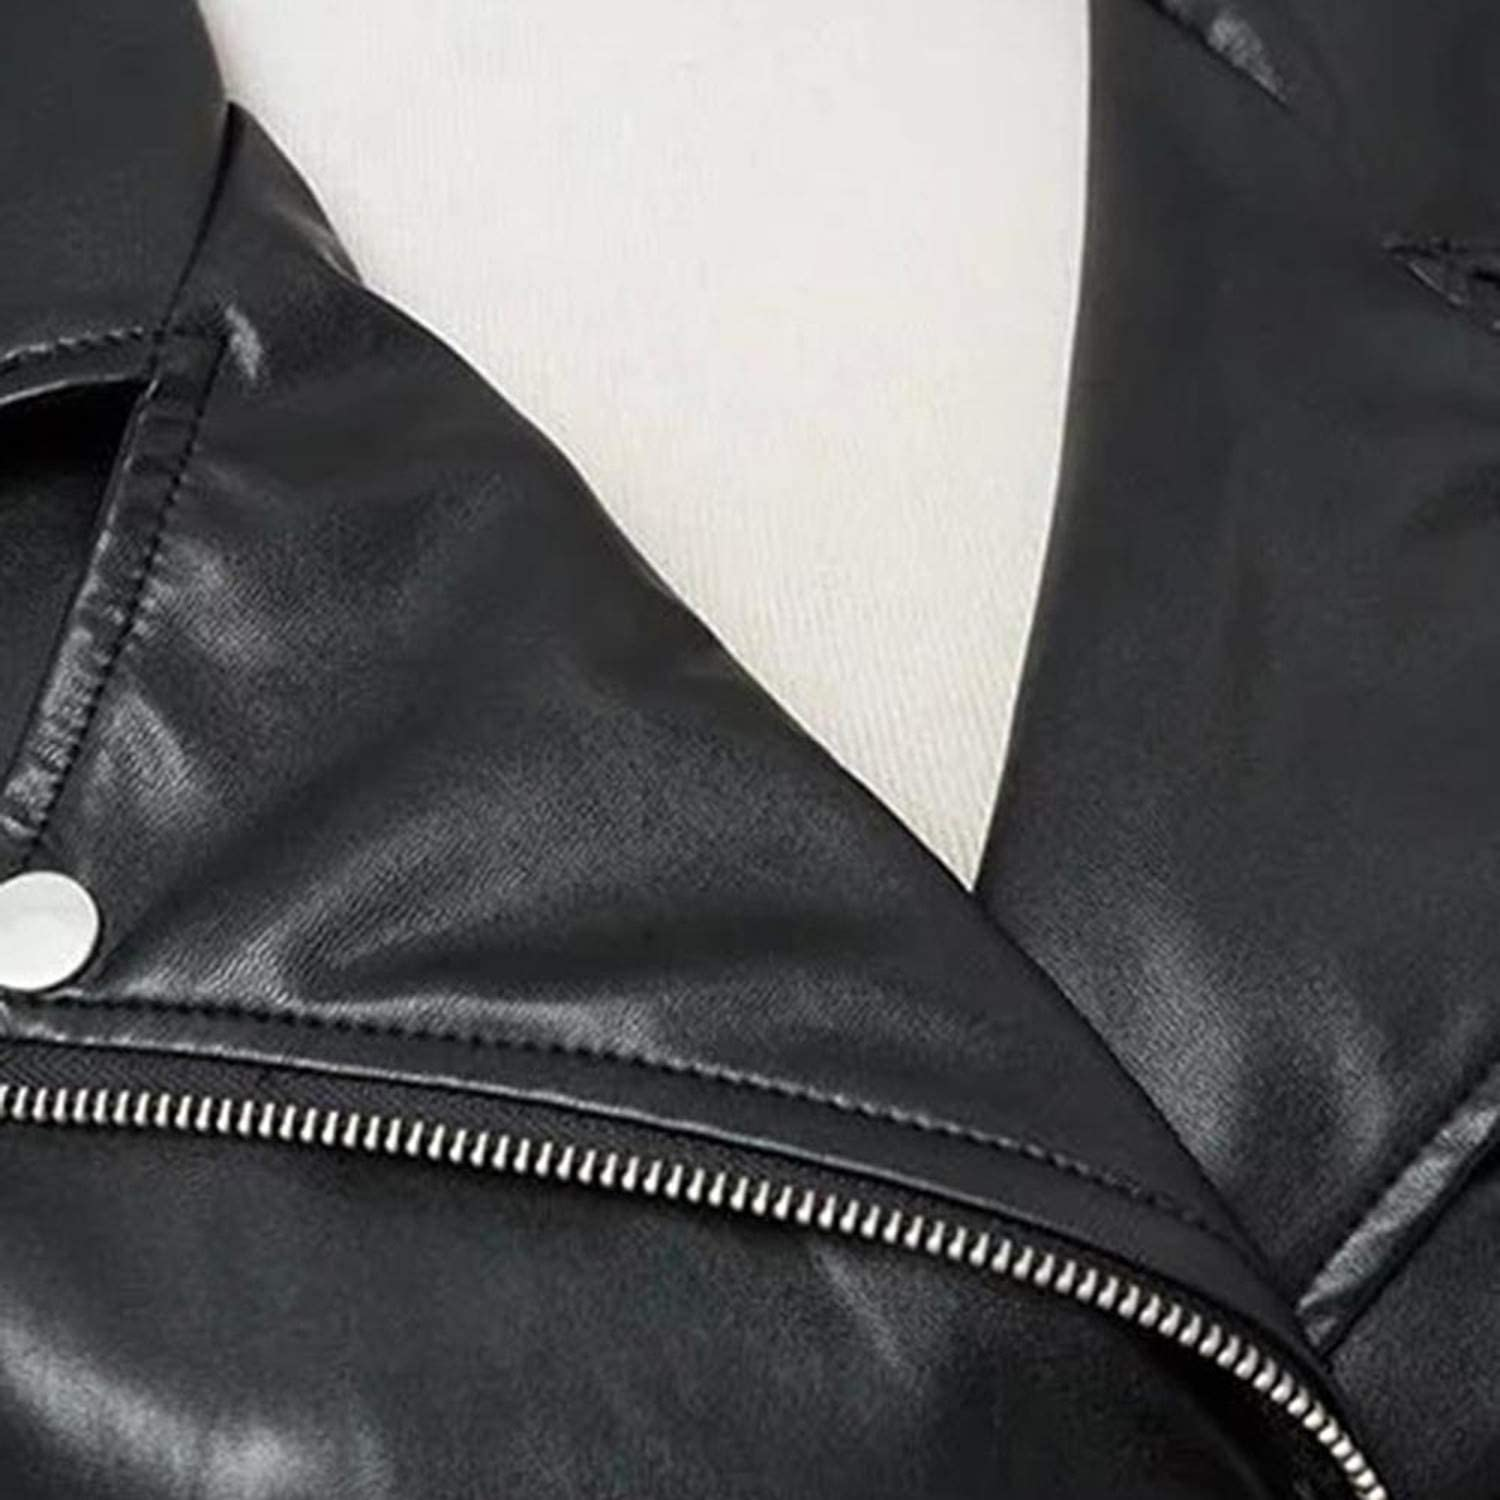 Cheryl Bull Trendy Moto PU Jacket Women WinterCoat Black Zipper Outerwear Jacket Punk